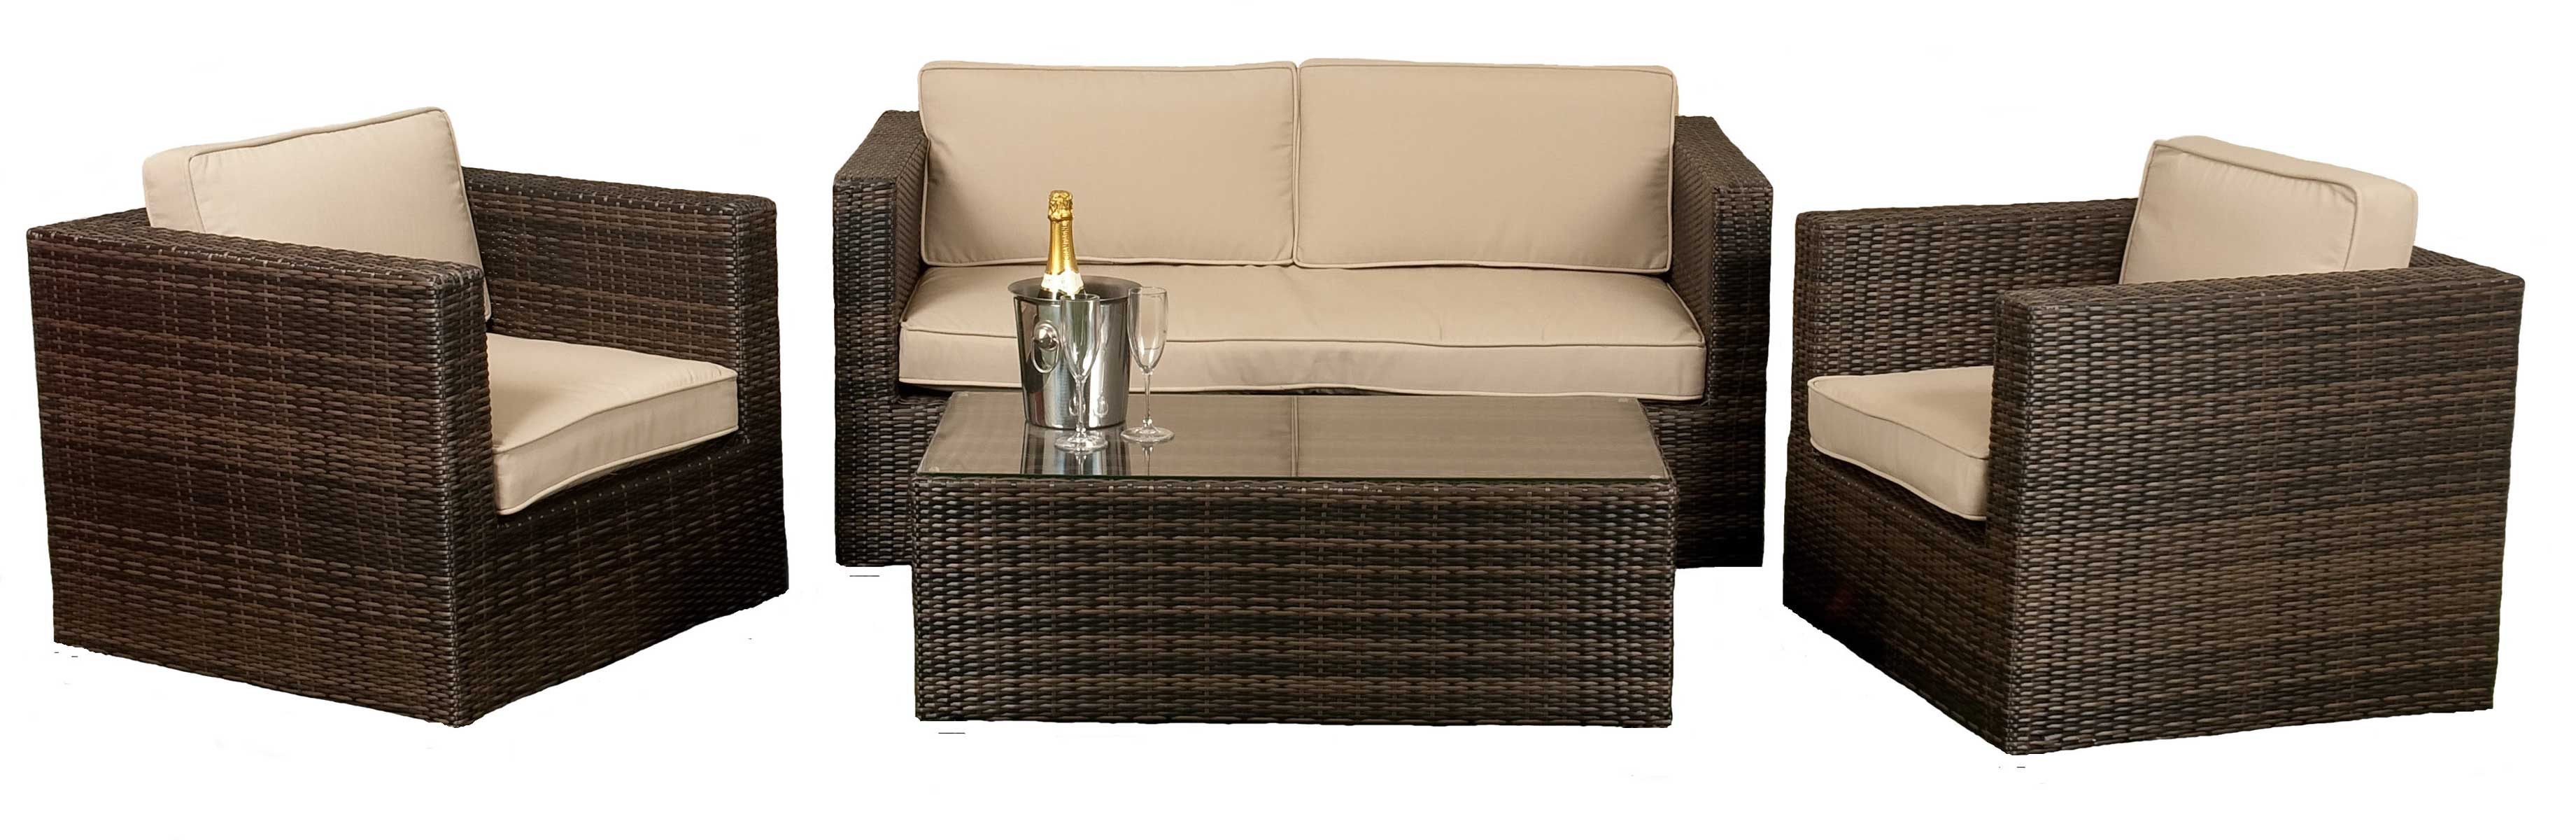 wicker sofa sets uk decorating ideas for living rooms with red sofas rattan set gordons caterhire